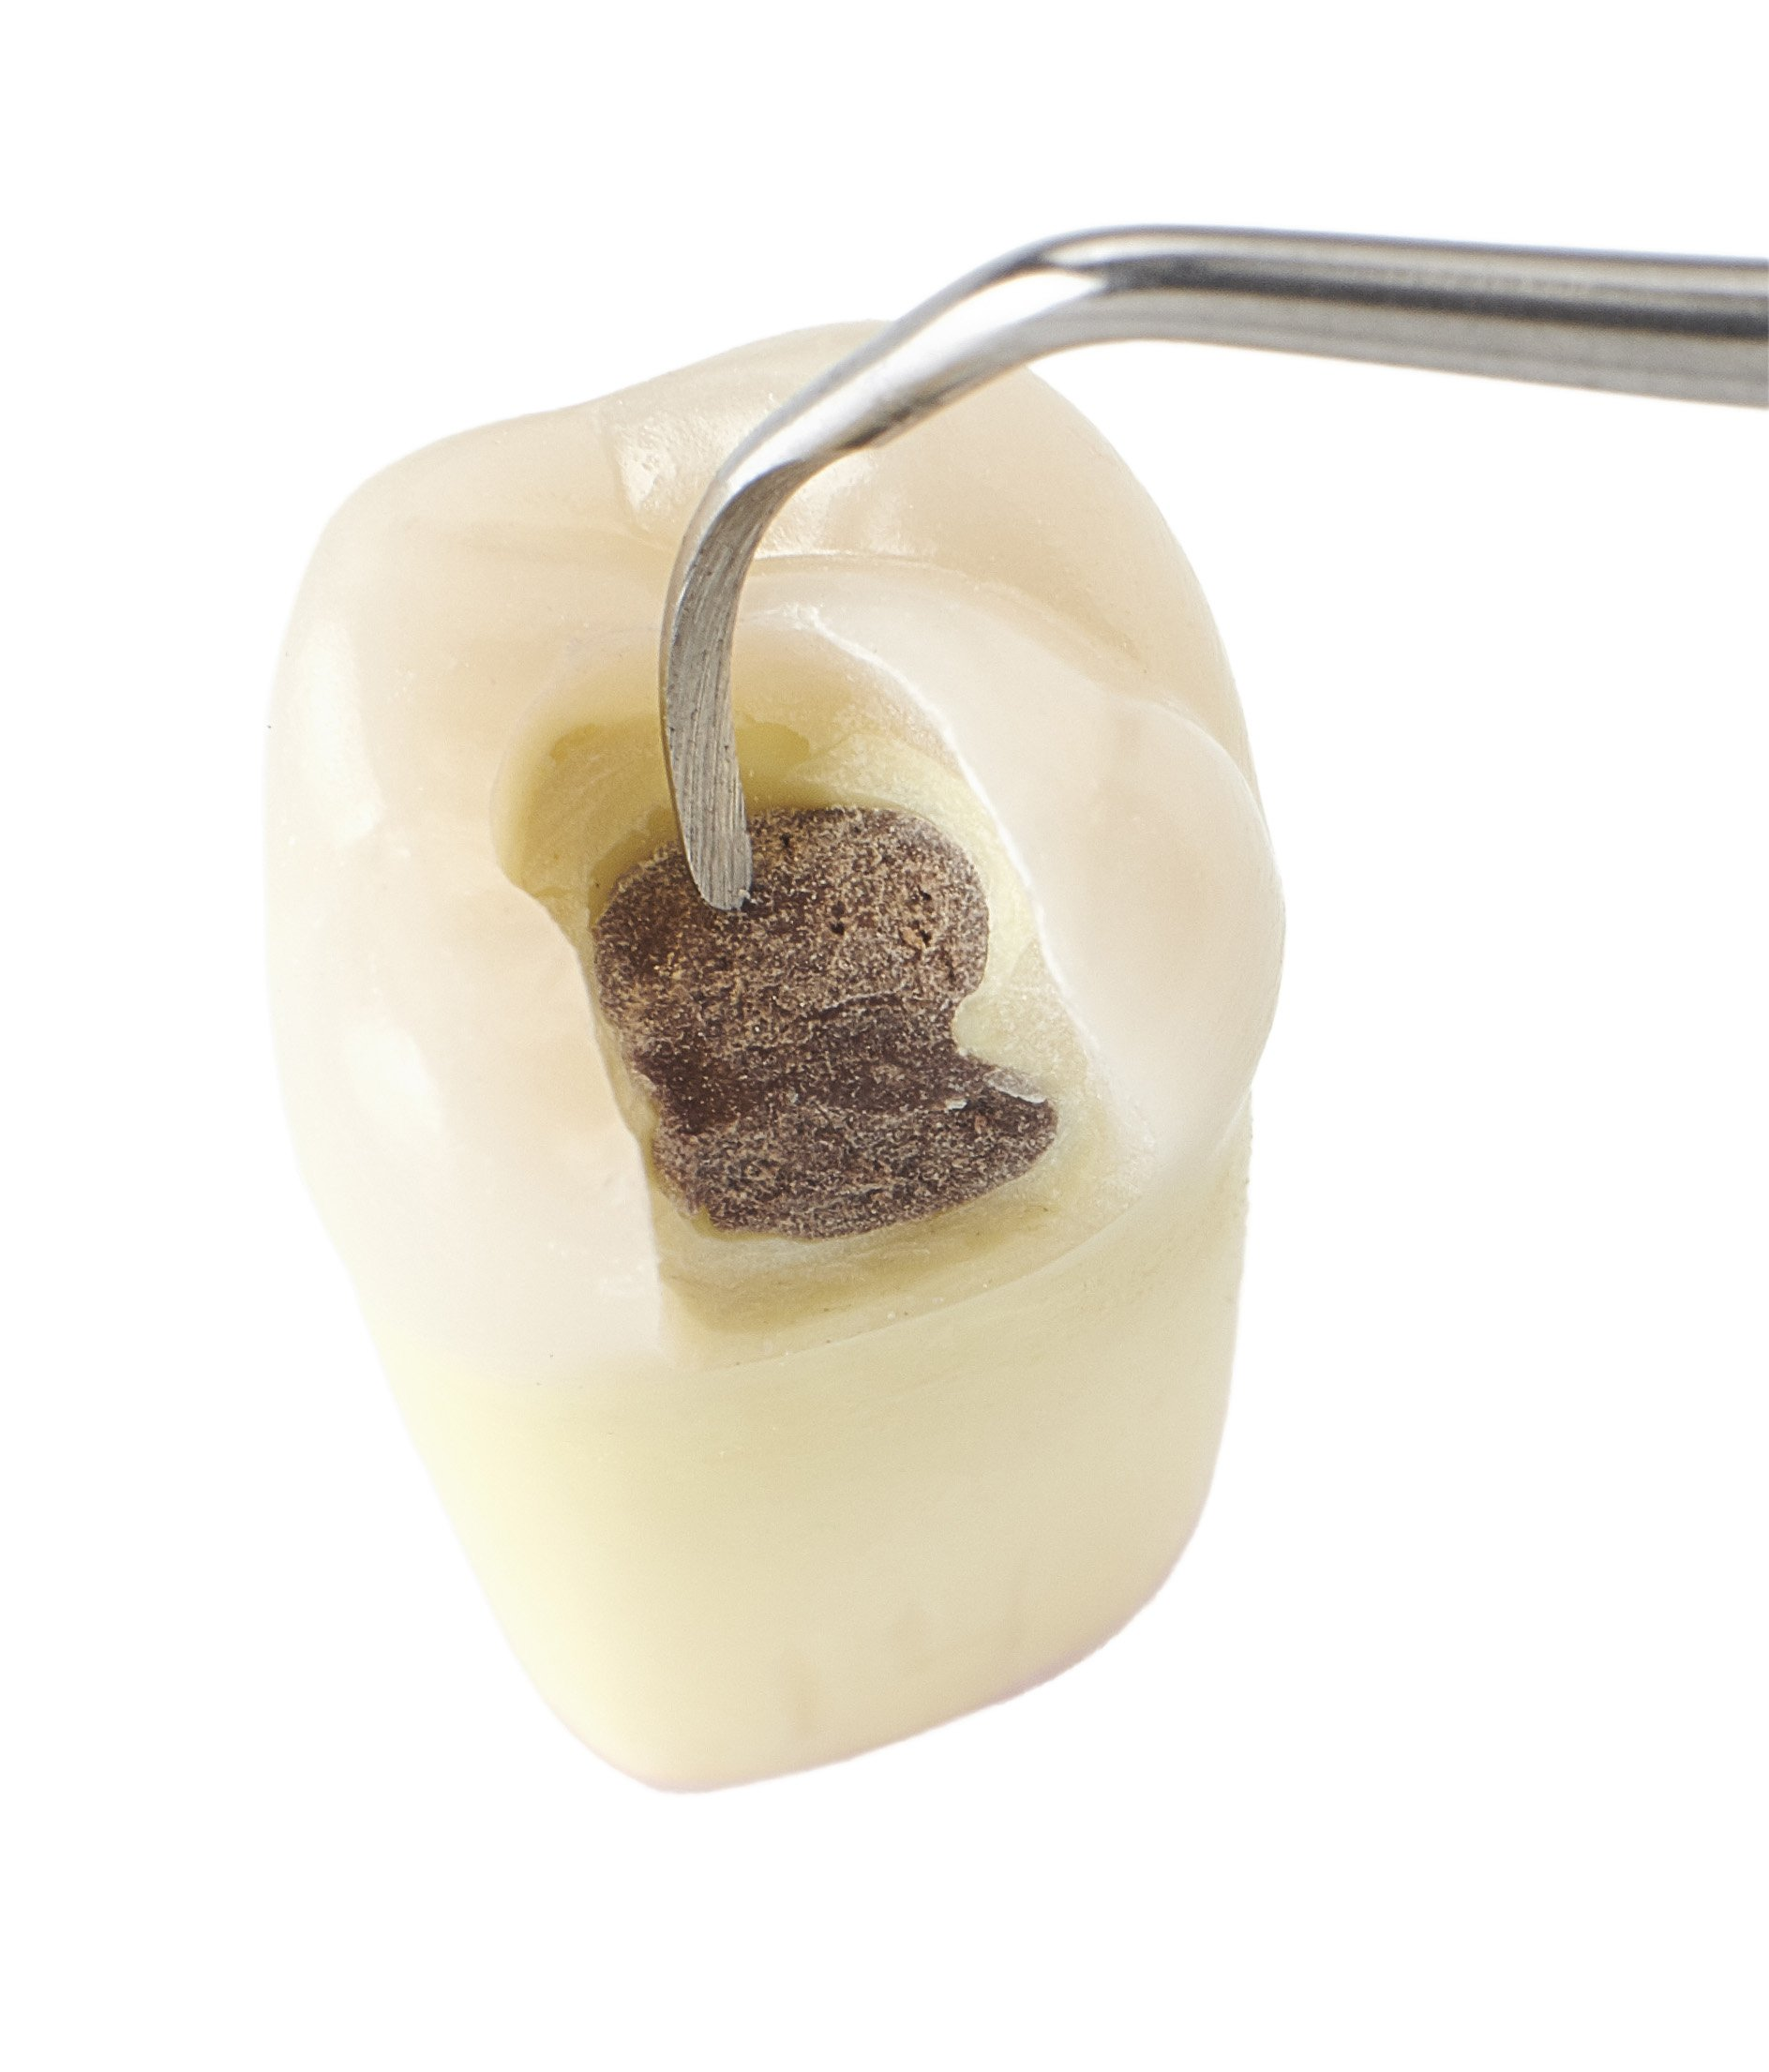 Caries simulated teeth now more realistic (for better training)